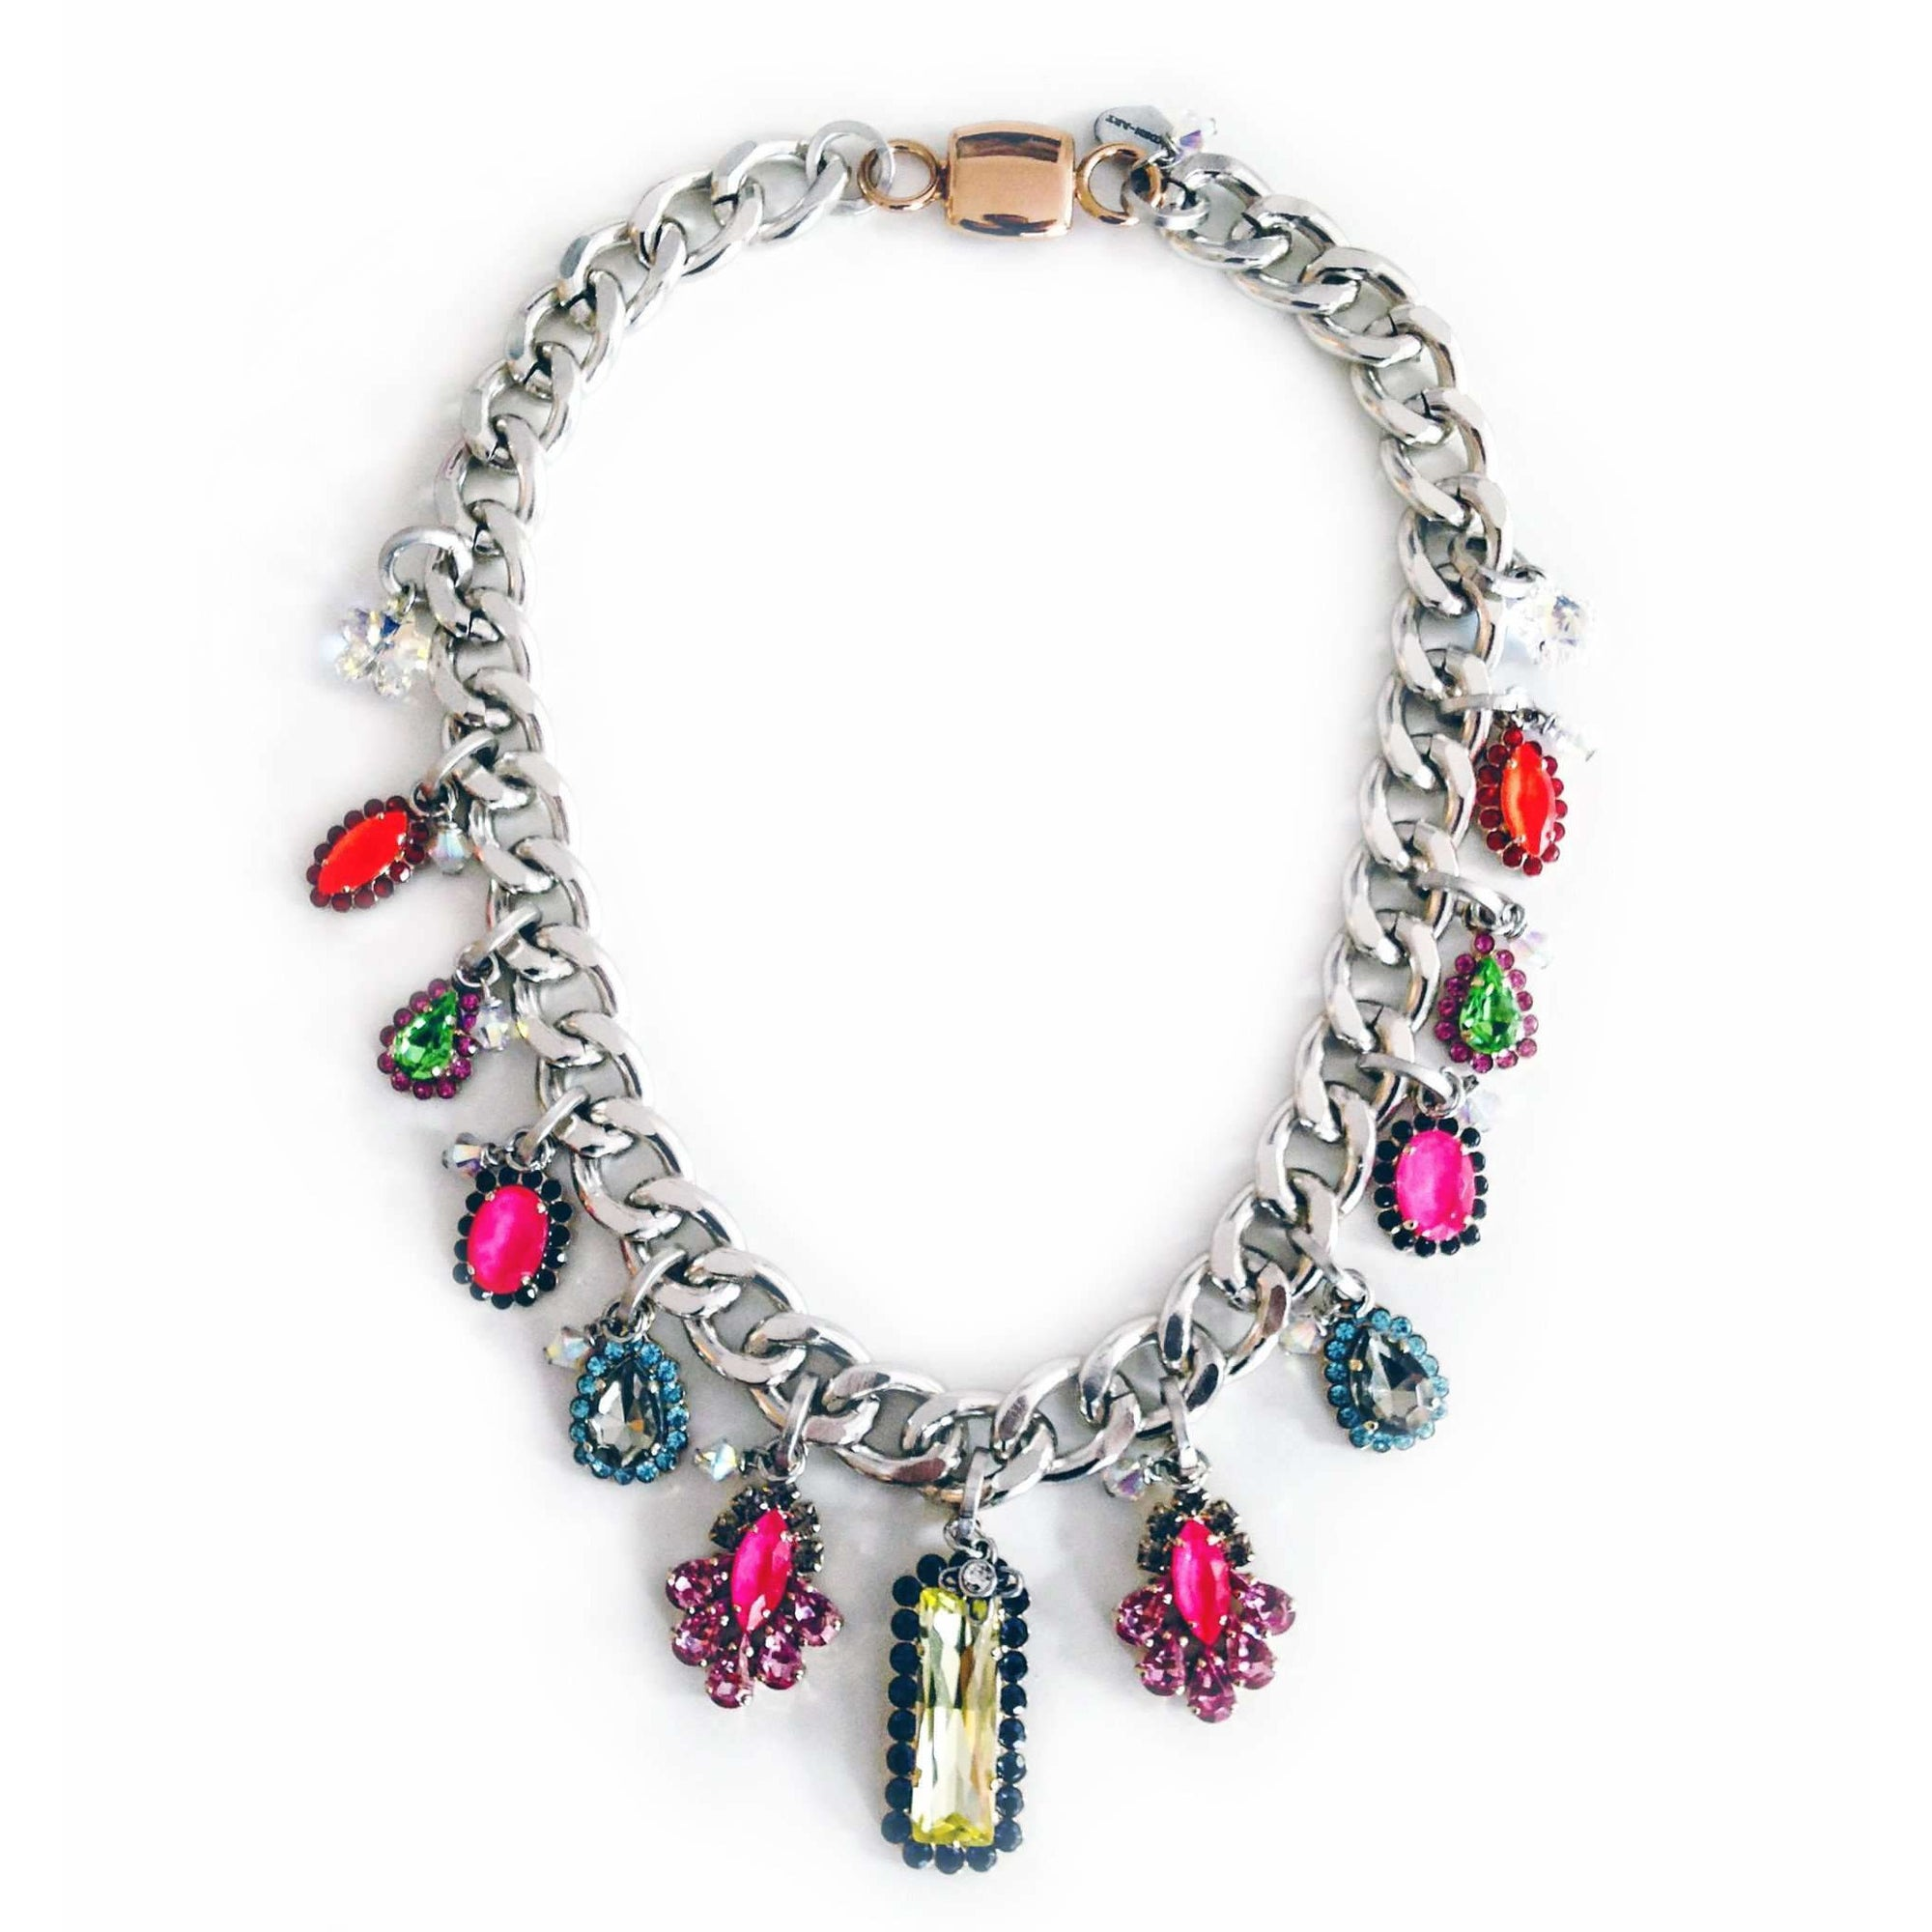 Bib Necklace With Colorful Swarovski Crystals - Miraposa